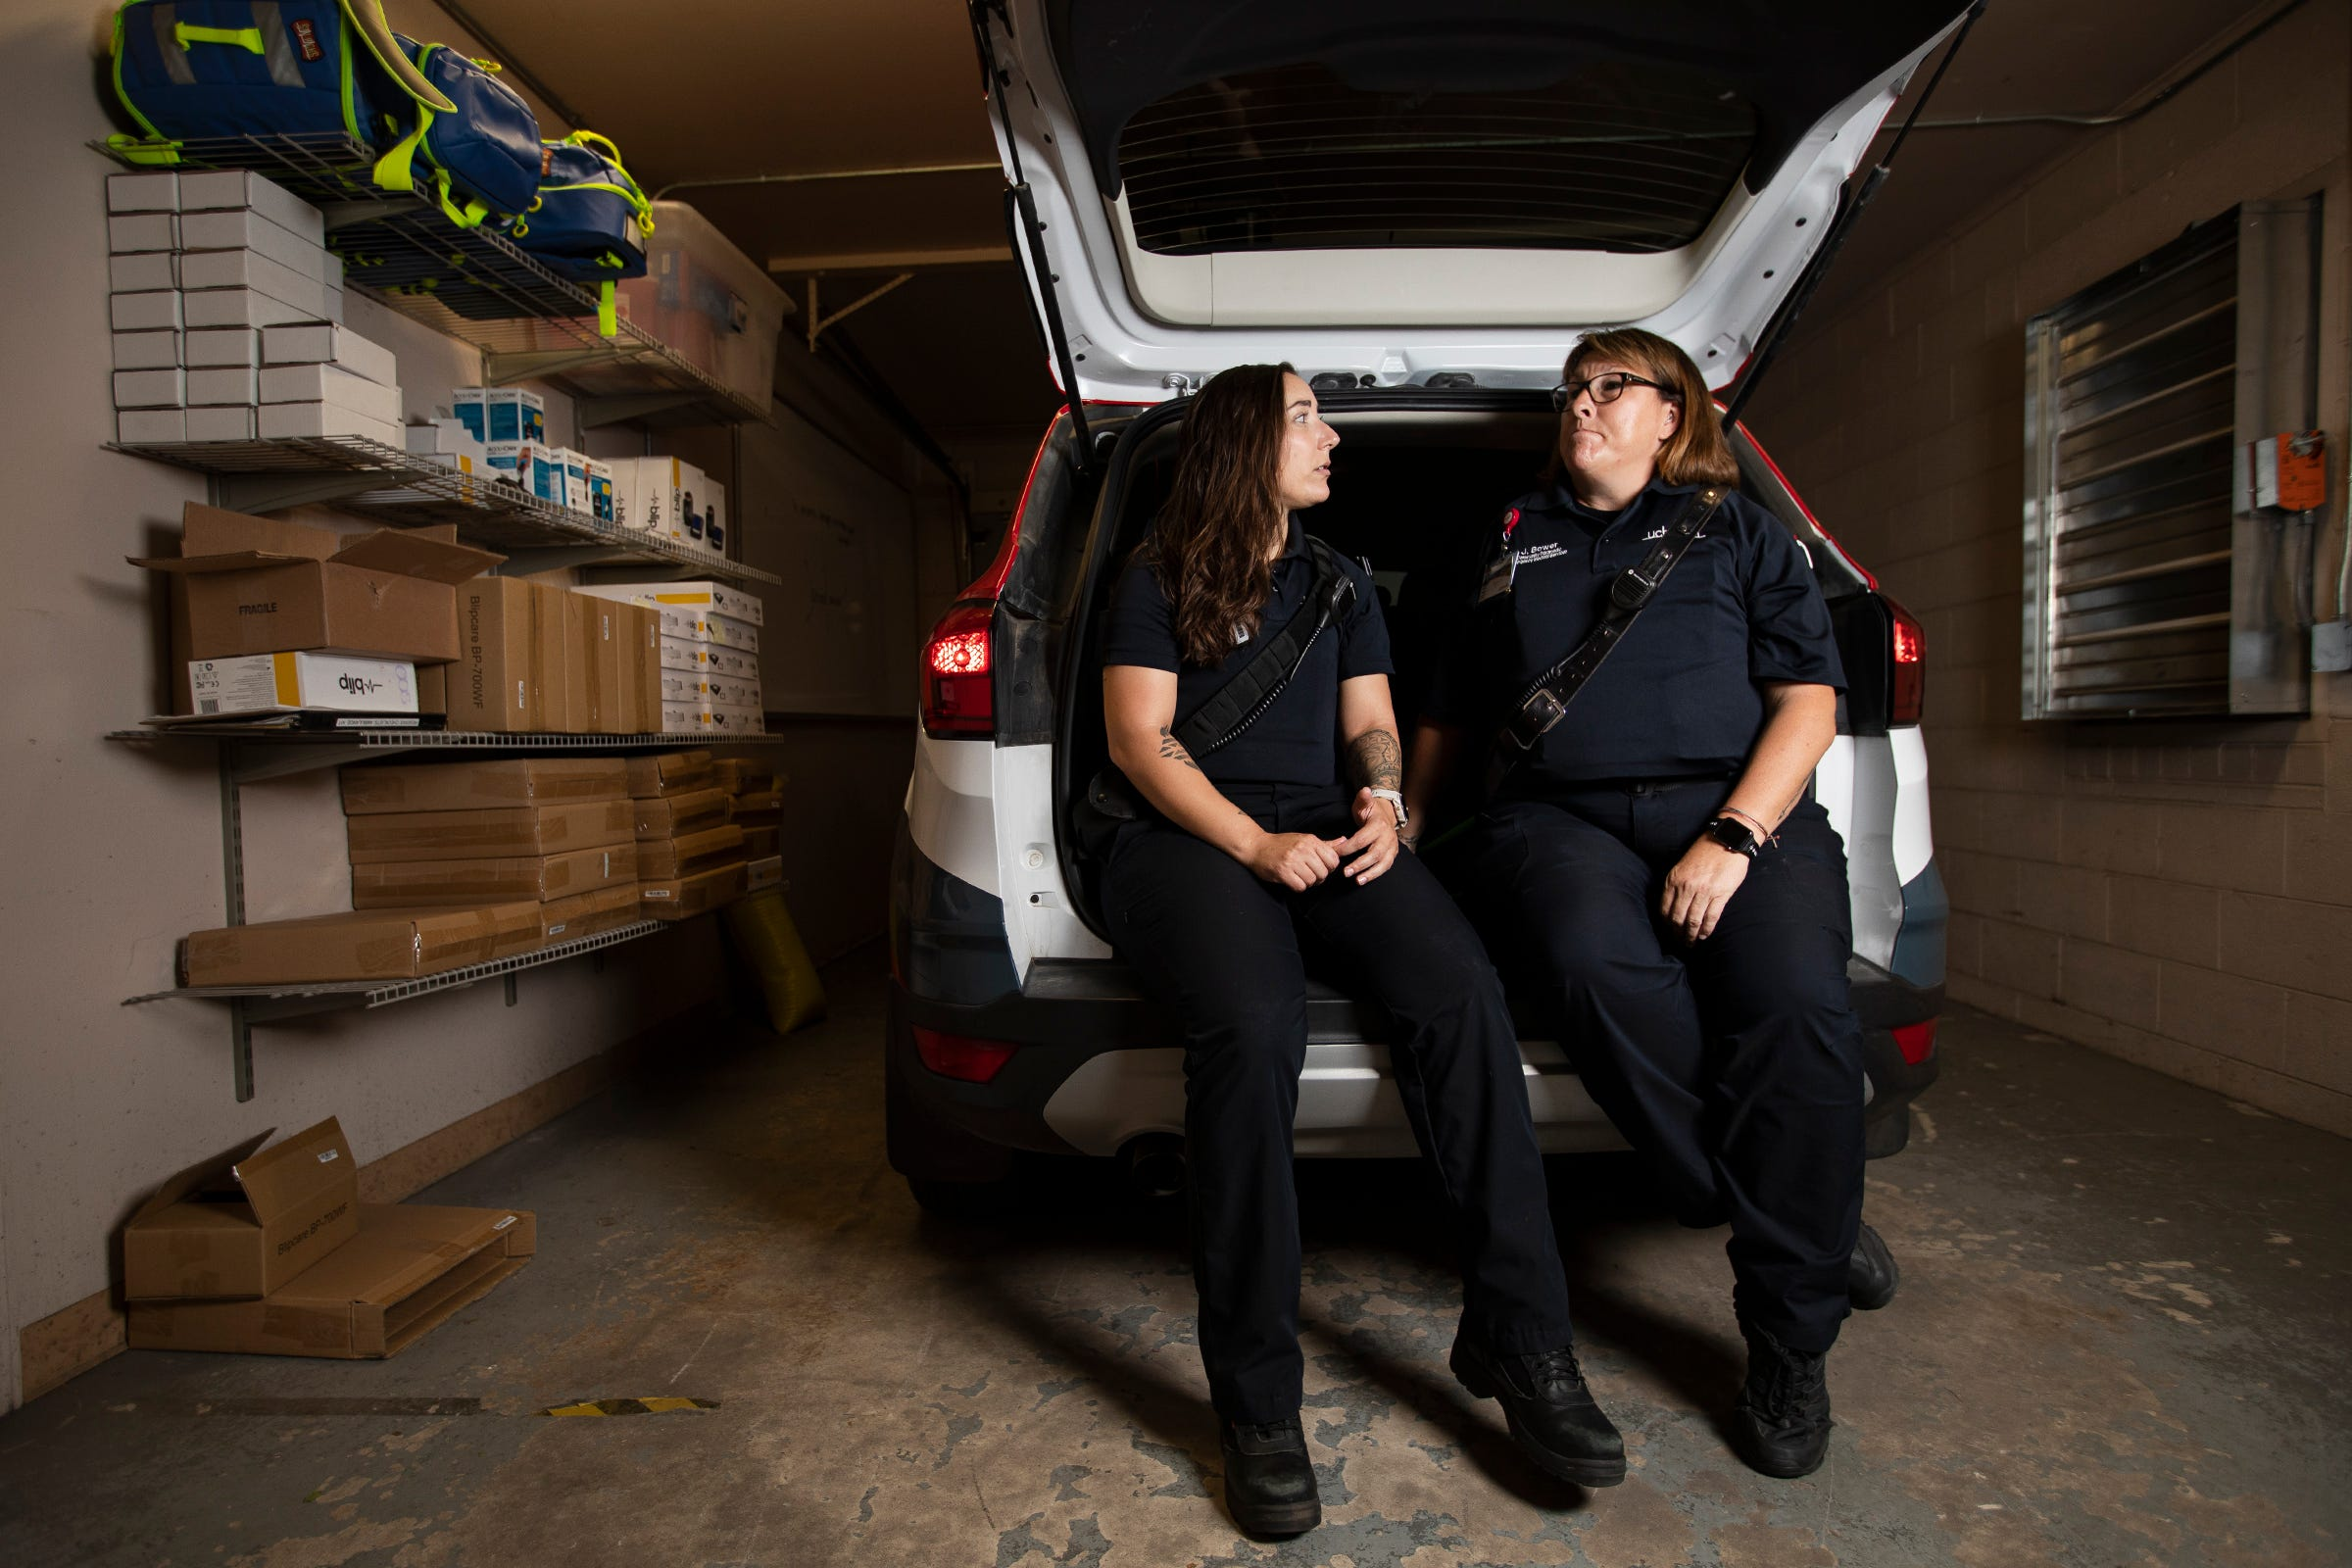 UCHealth community program coordinator and licensed clinician Stephanie Booco, left, and community paramedic Julie Bower talk about the day's calls during a portrait session on Wednesday July 29, 2020, at a UCHealth ambulance station in Fort Collins, Colo.